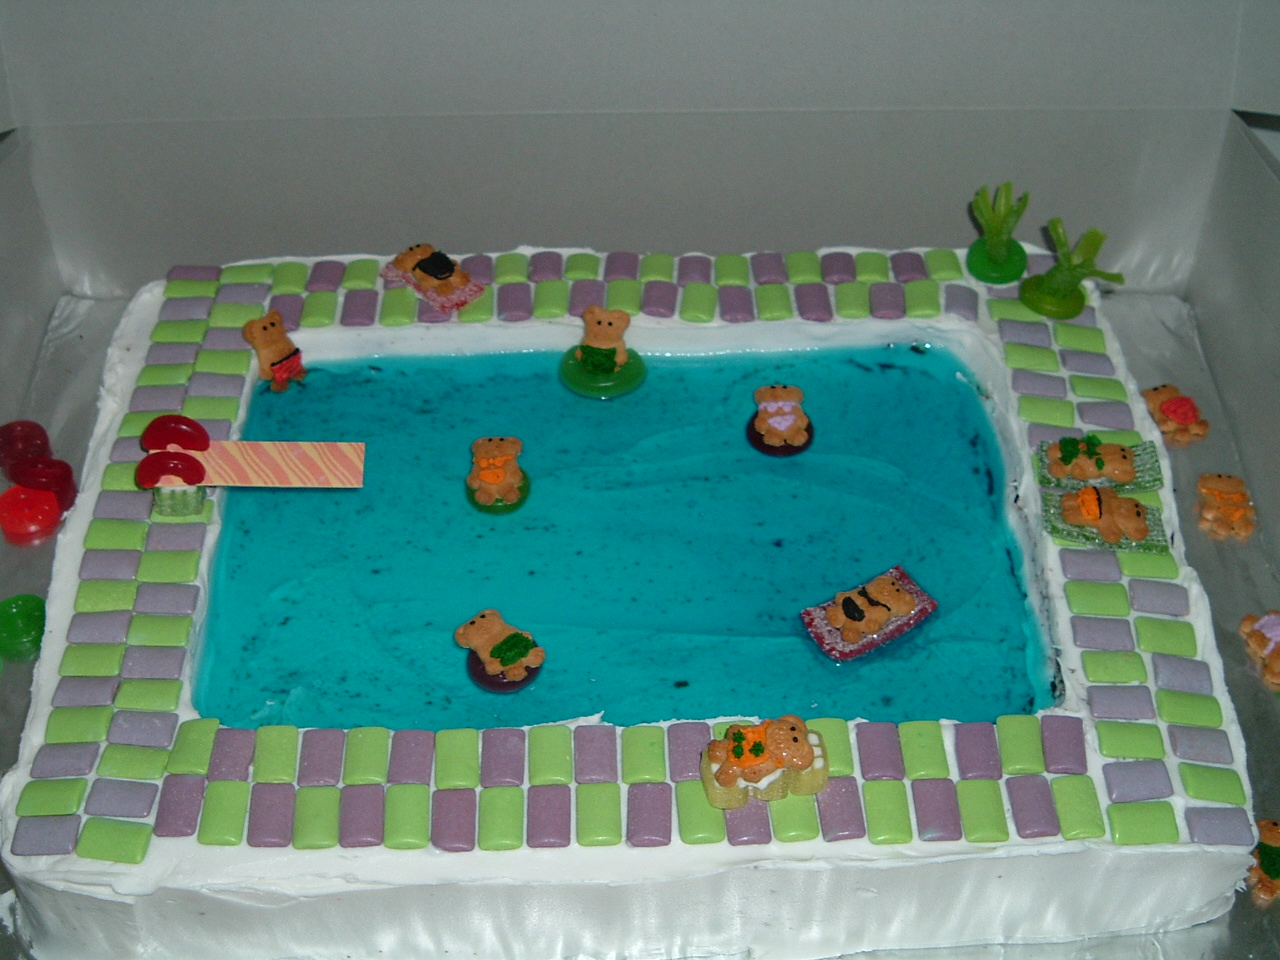 Pool Party Cake Ideas Image Pool Party Cake Photo ...